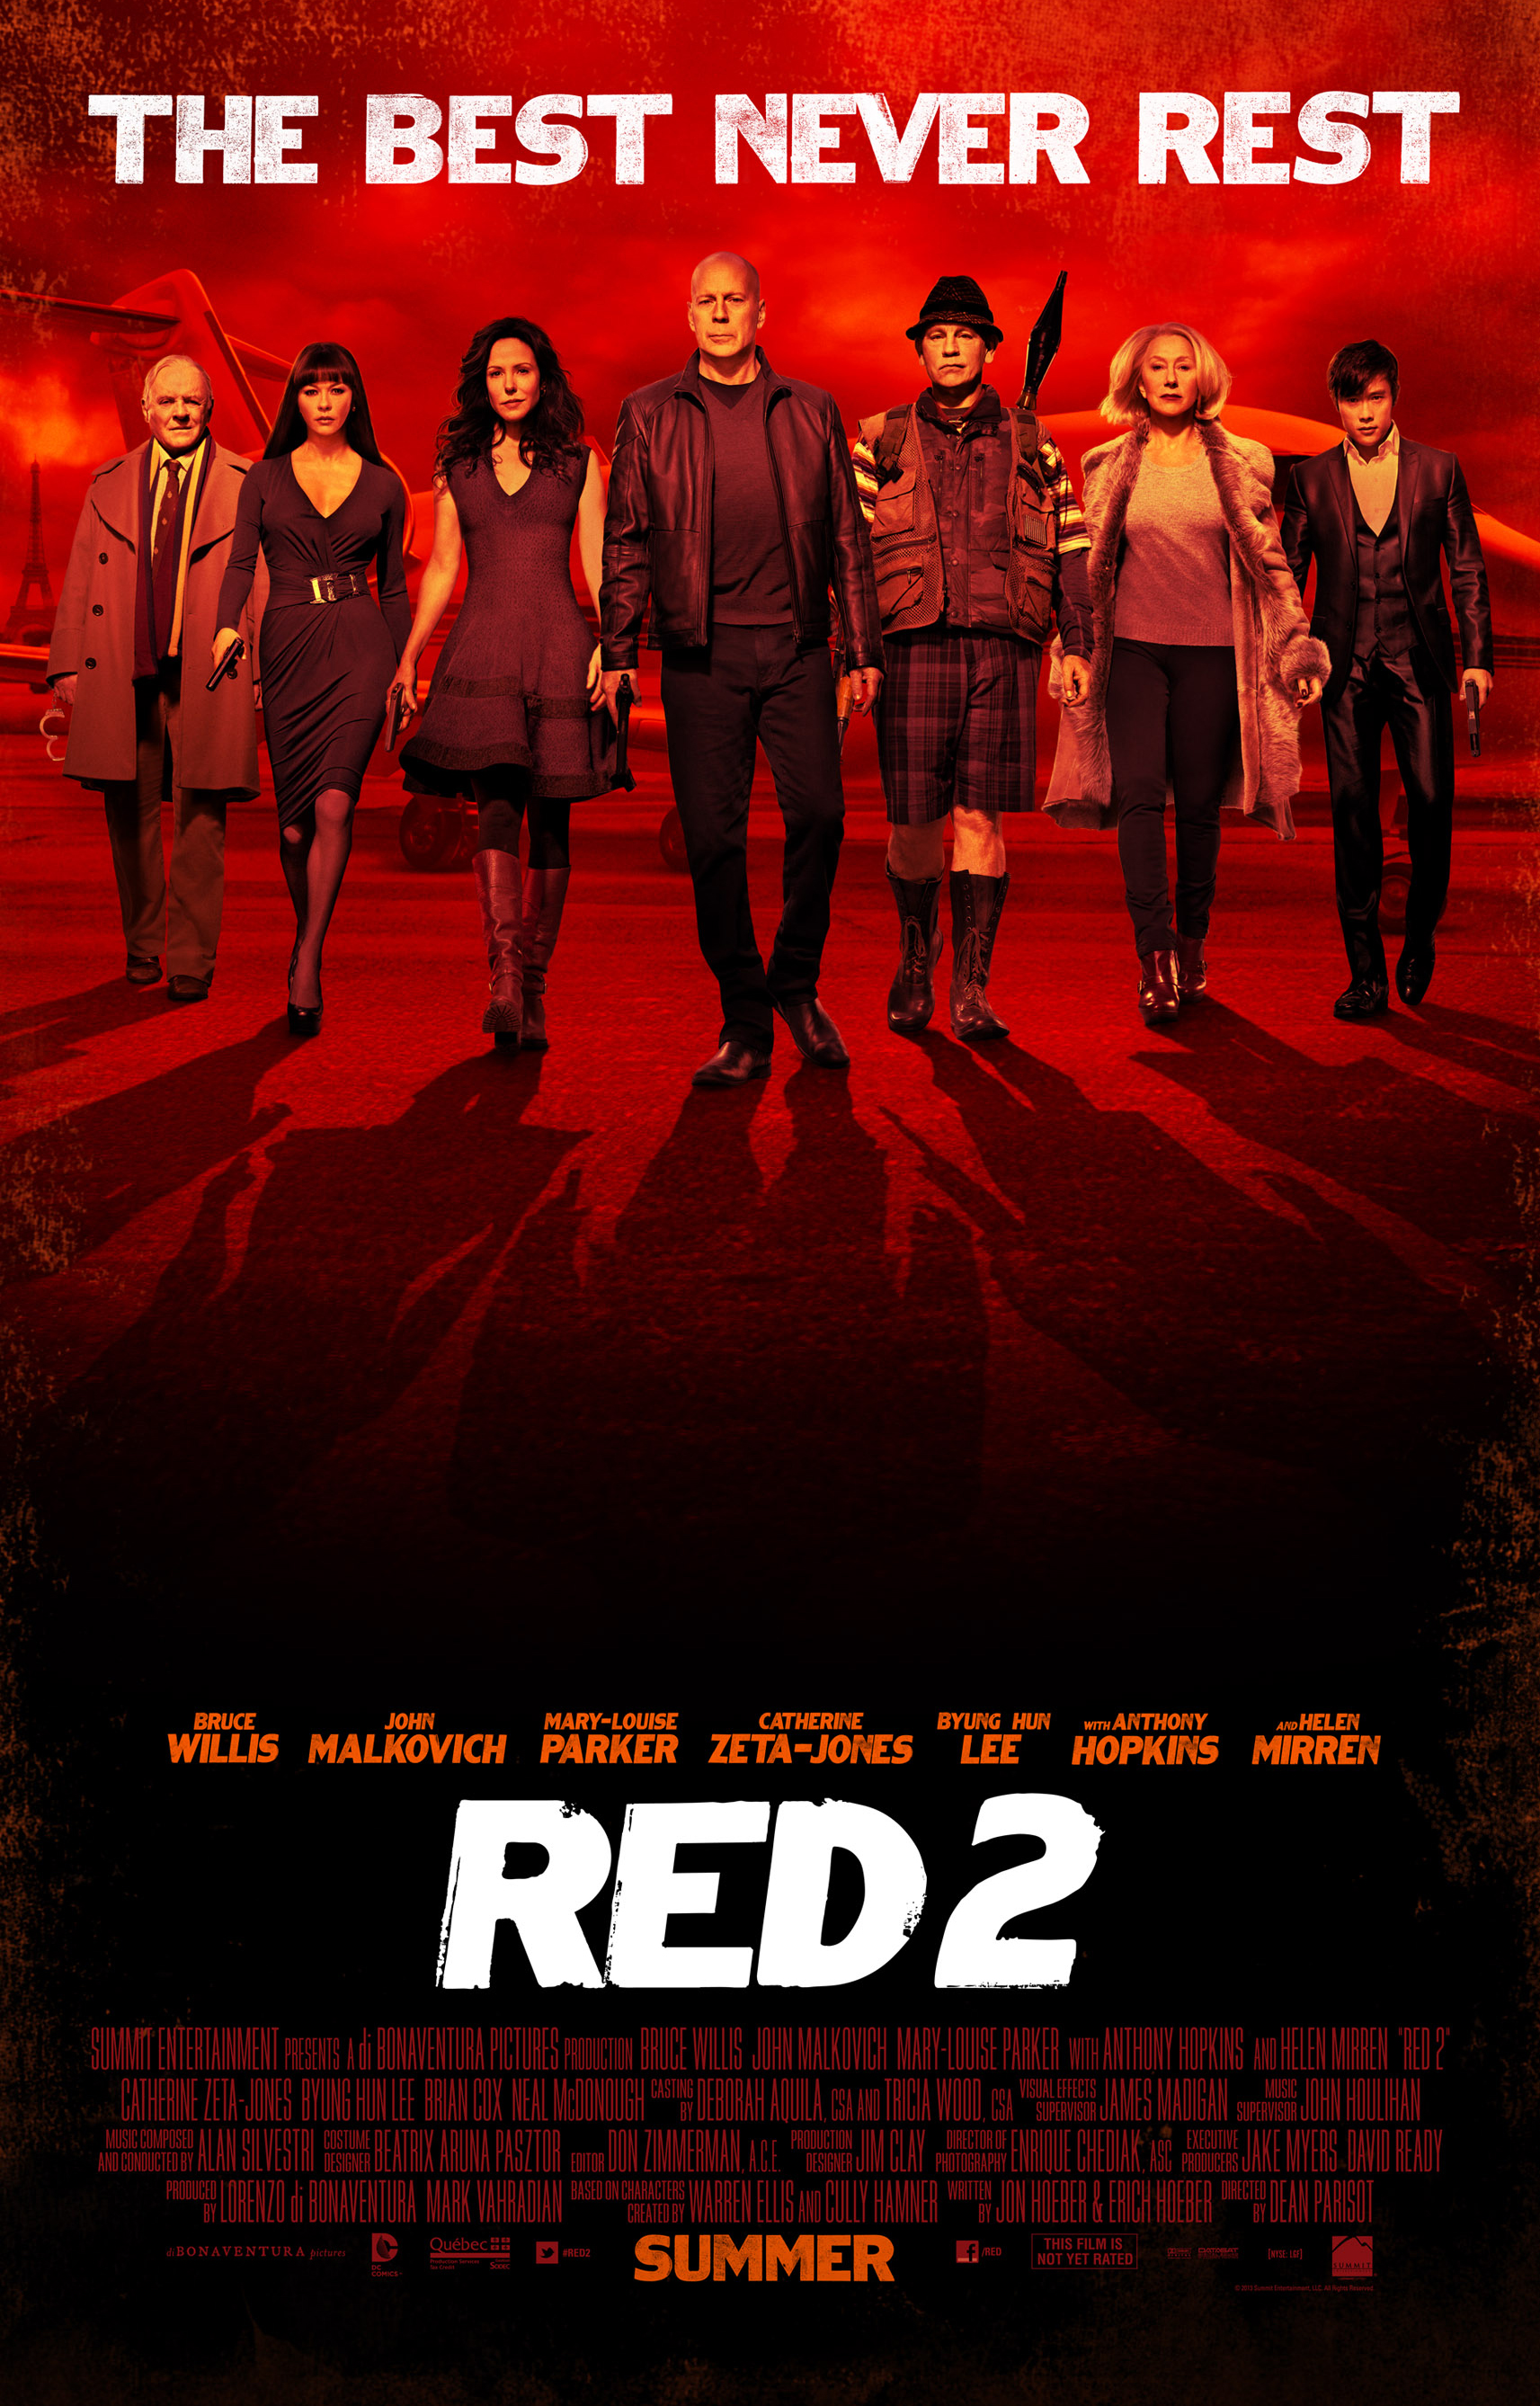 Red 2 new one-sheet